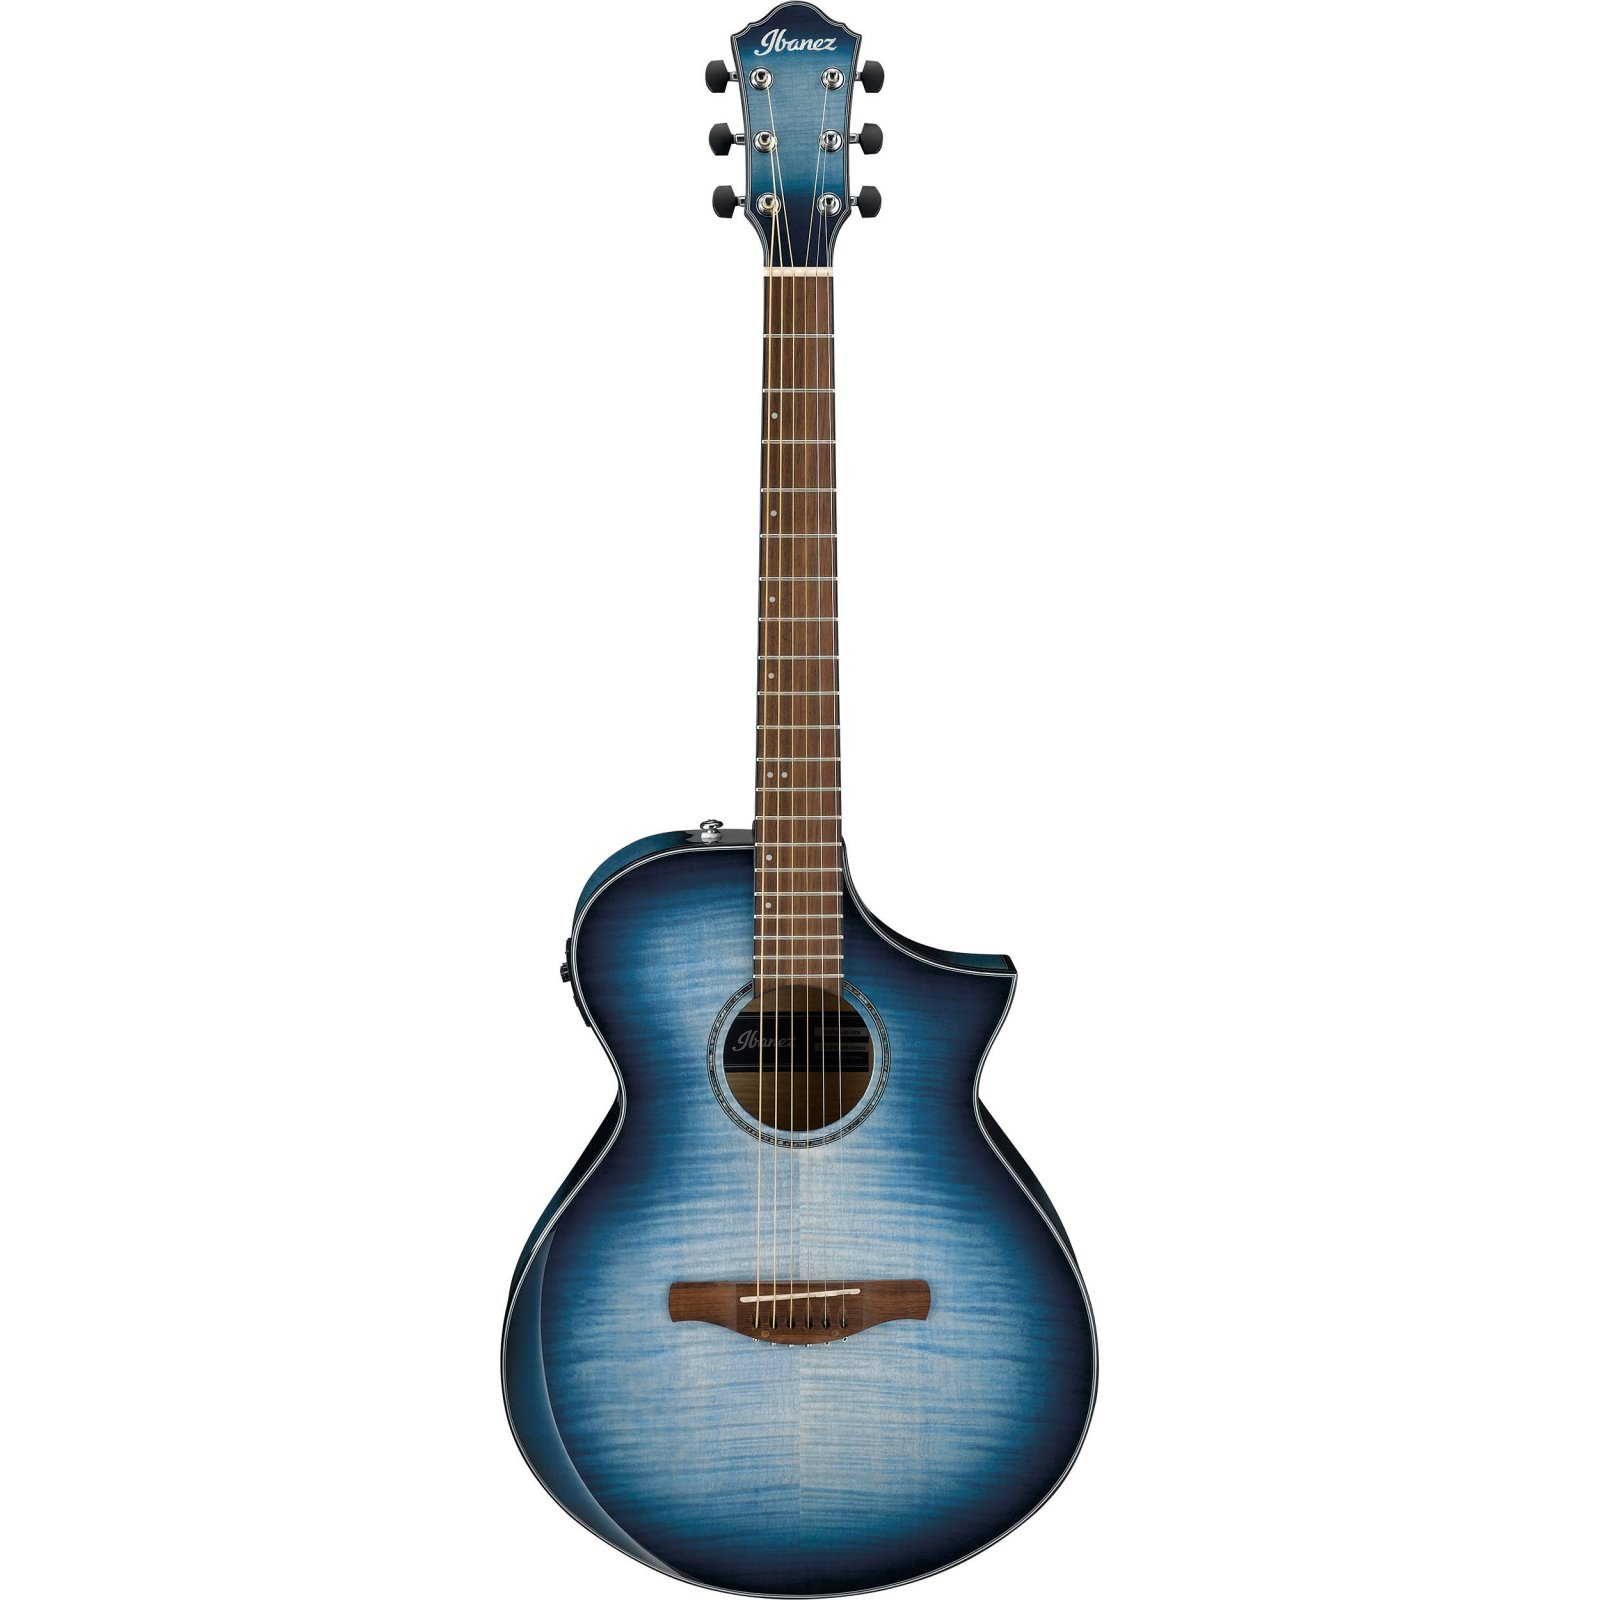 Ibanez AEWC400IBB Acoustic Electric Guitar